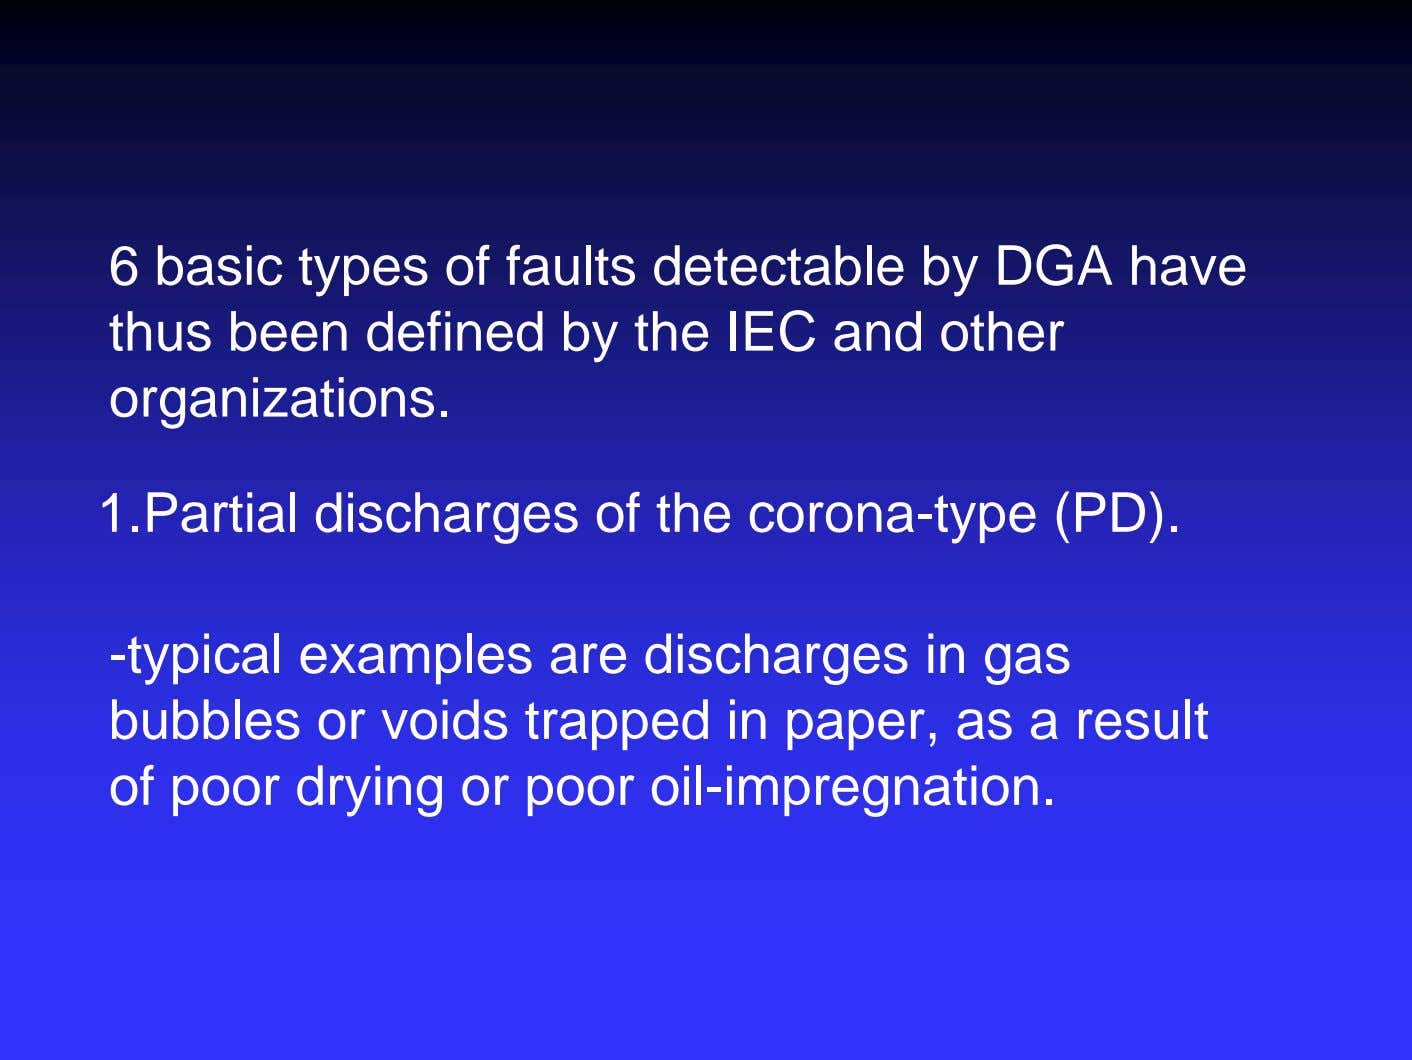 6 basic types of faults detectable by DGA have thus been defined by the IEC